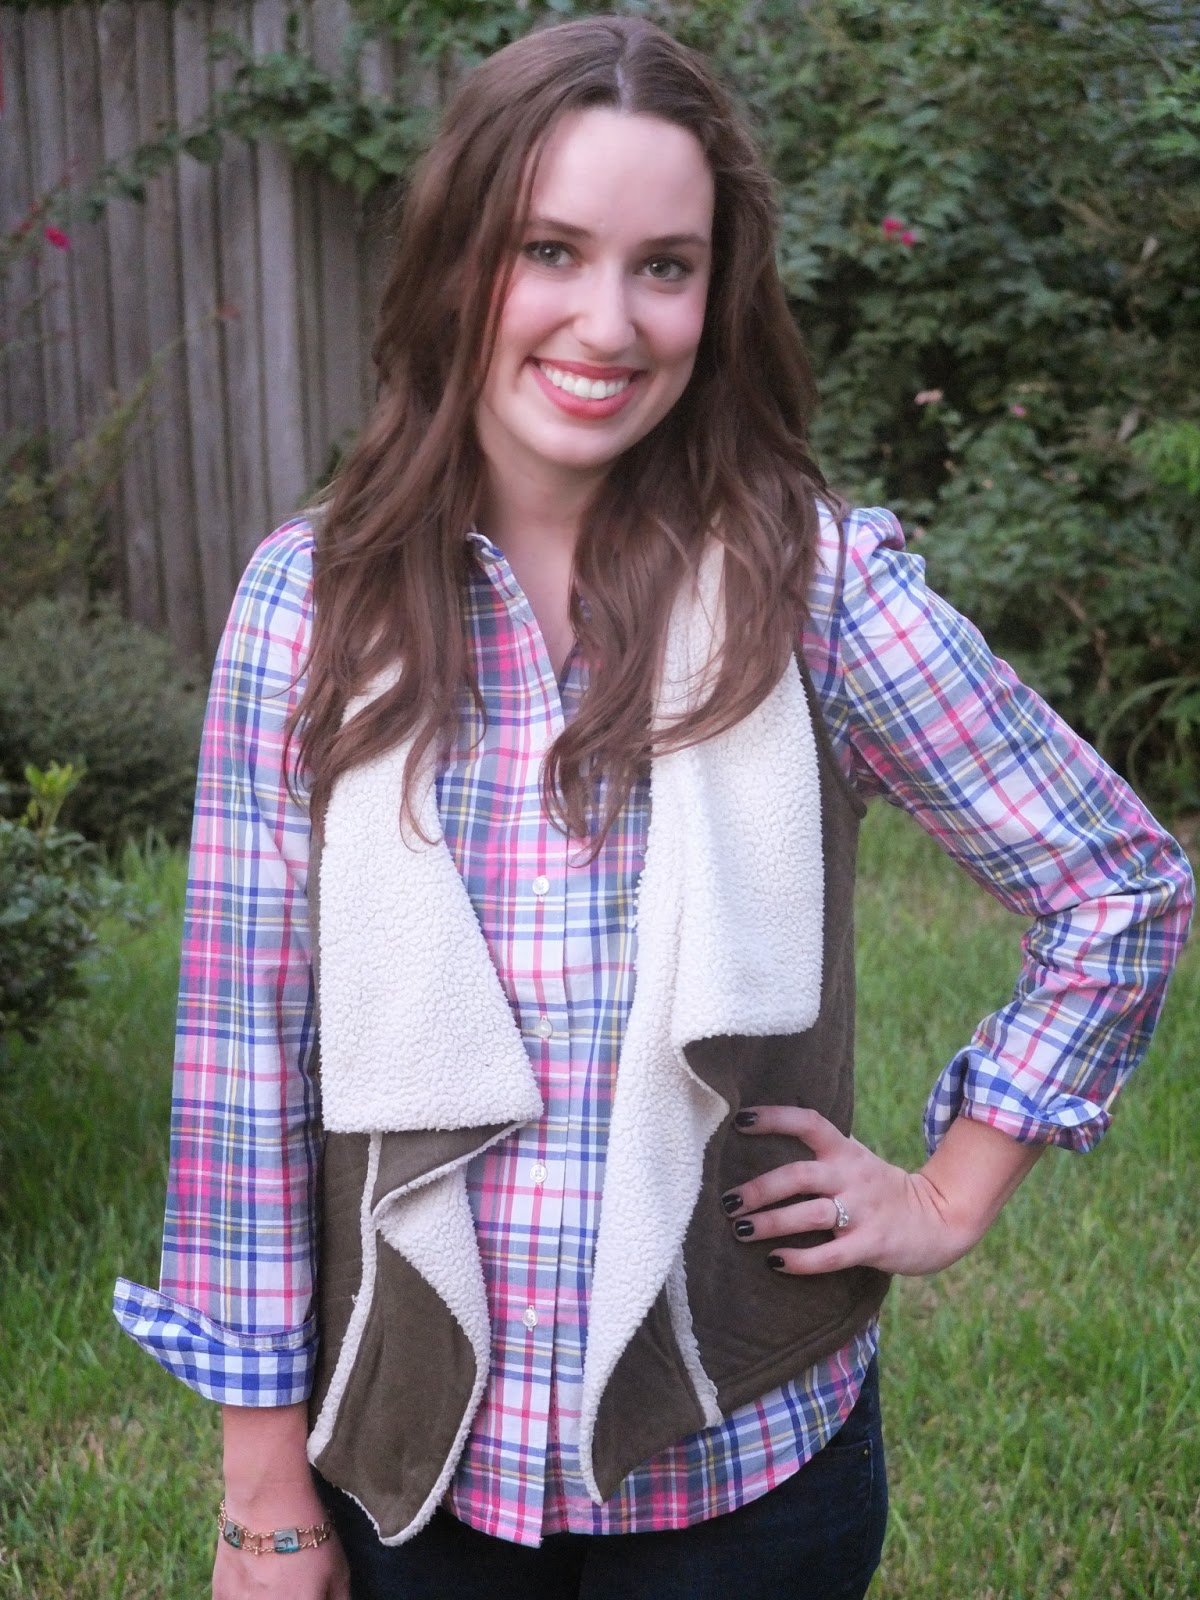 Boden The Shirt, Boden the Shirt Red Check, Boden The Shirt Plaid, Boden Plaid Shirt, Anthropologie Green Vest,